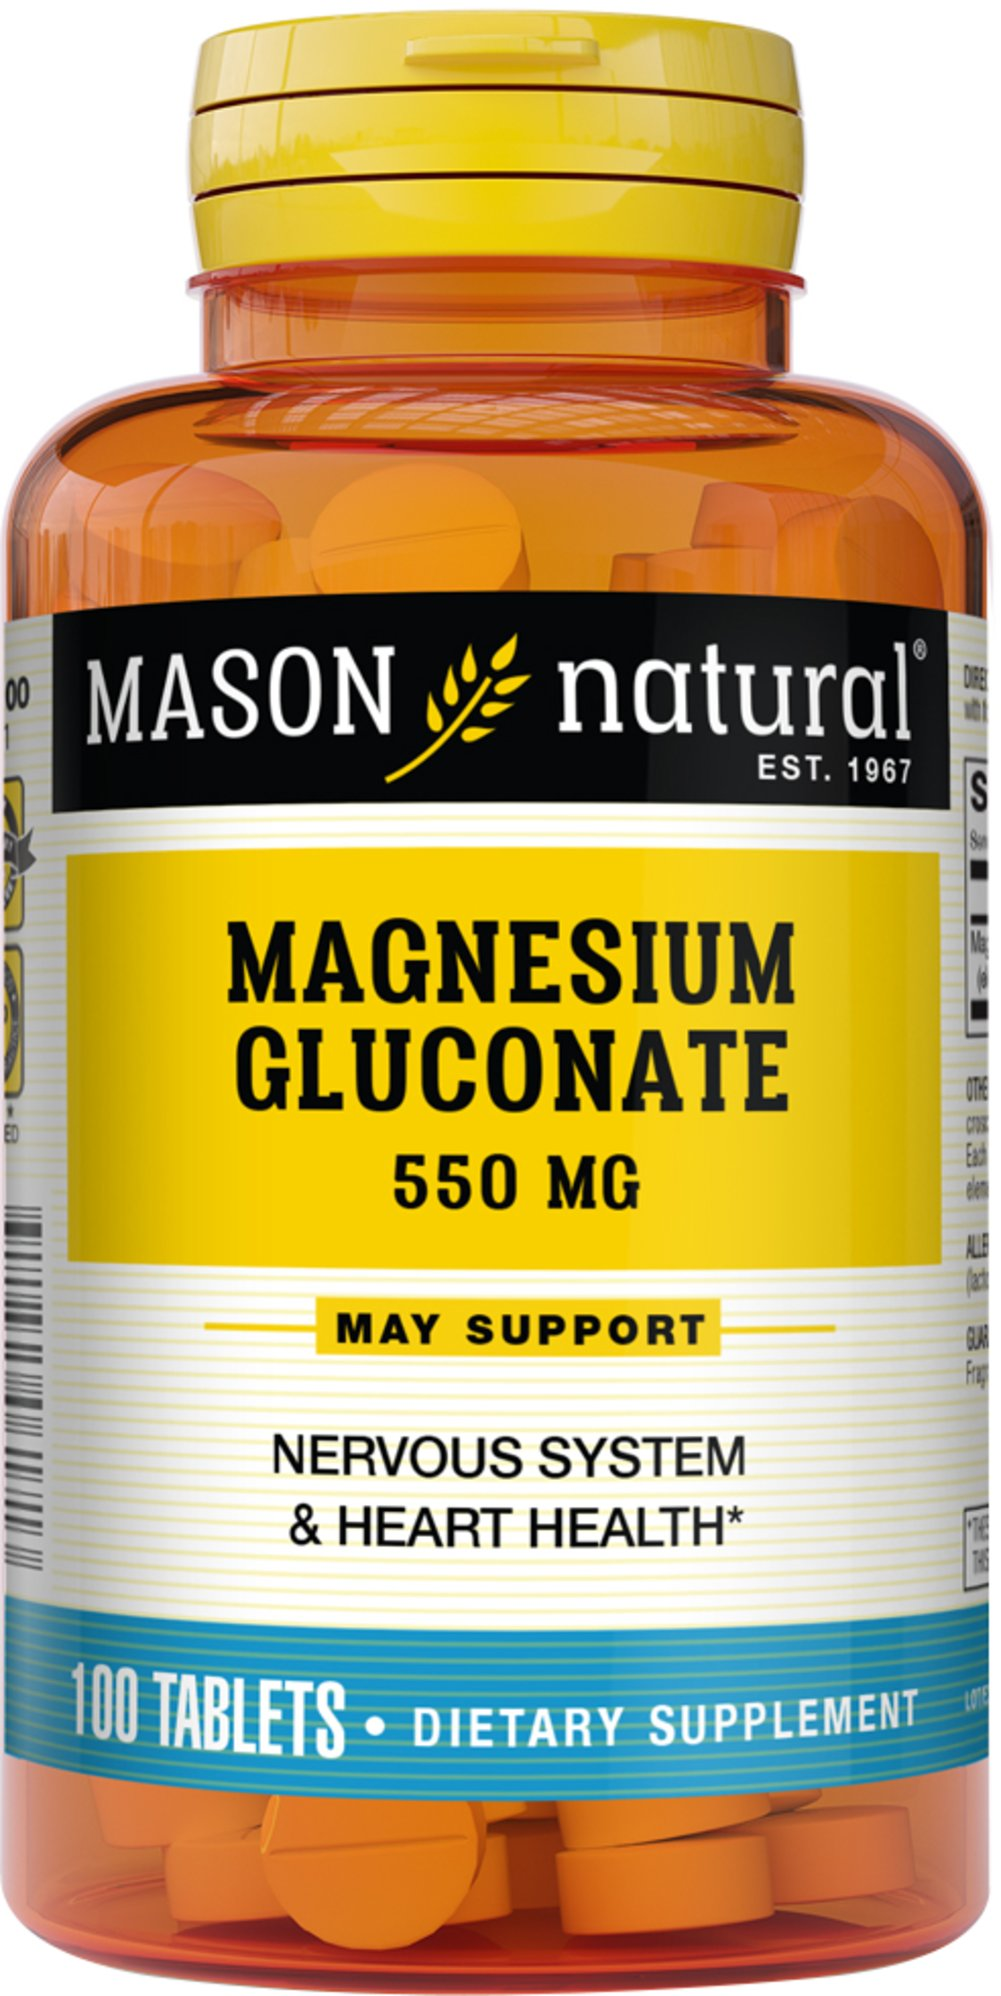 Magnesium Gluconate 550mg <p><strong>From the Manufacturer's Label</strong>:</p><p>Each 550 mg tablet of magnesium gluconate provides 30 mg of elemental magnesium.</p><p>Manufactured by Mason Naturals</p><p></p> 100 Tablets 550 mg $4.49